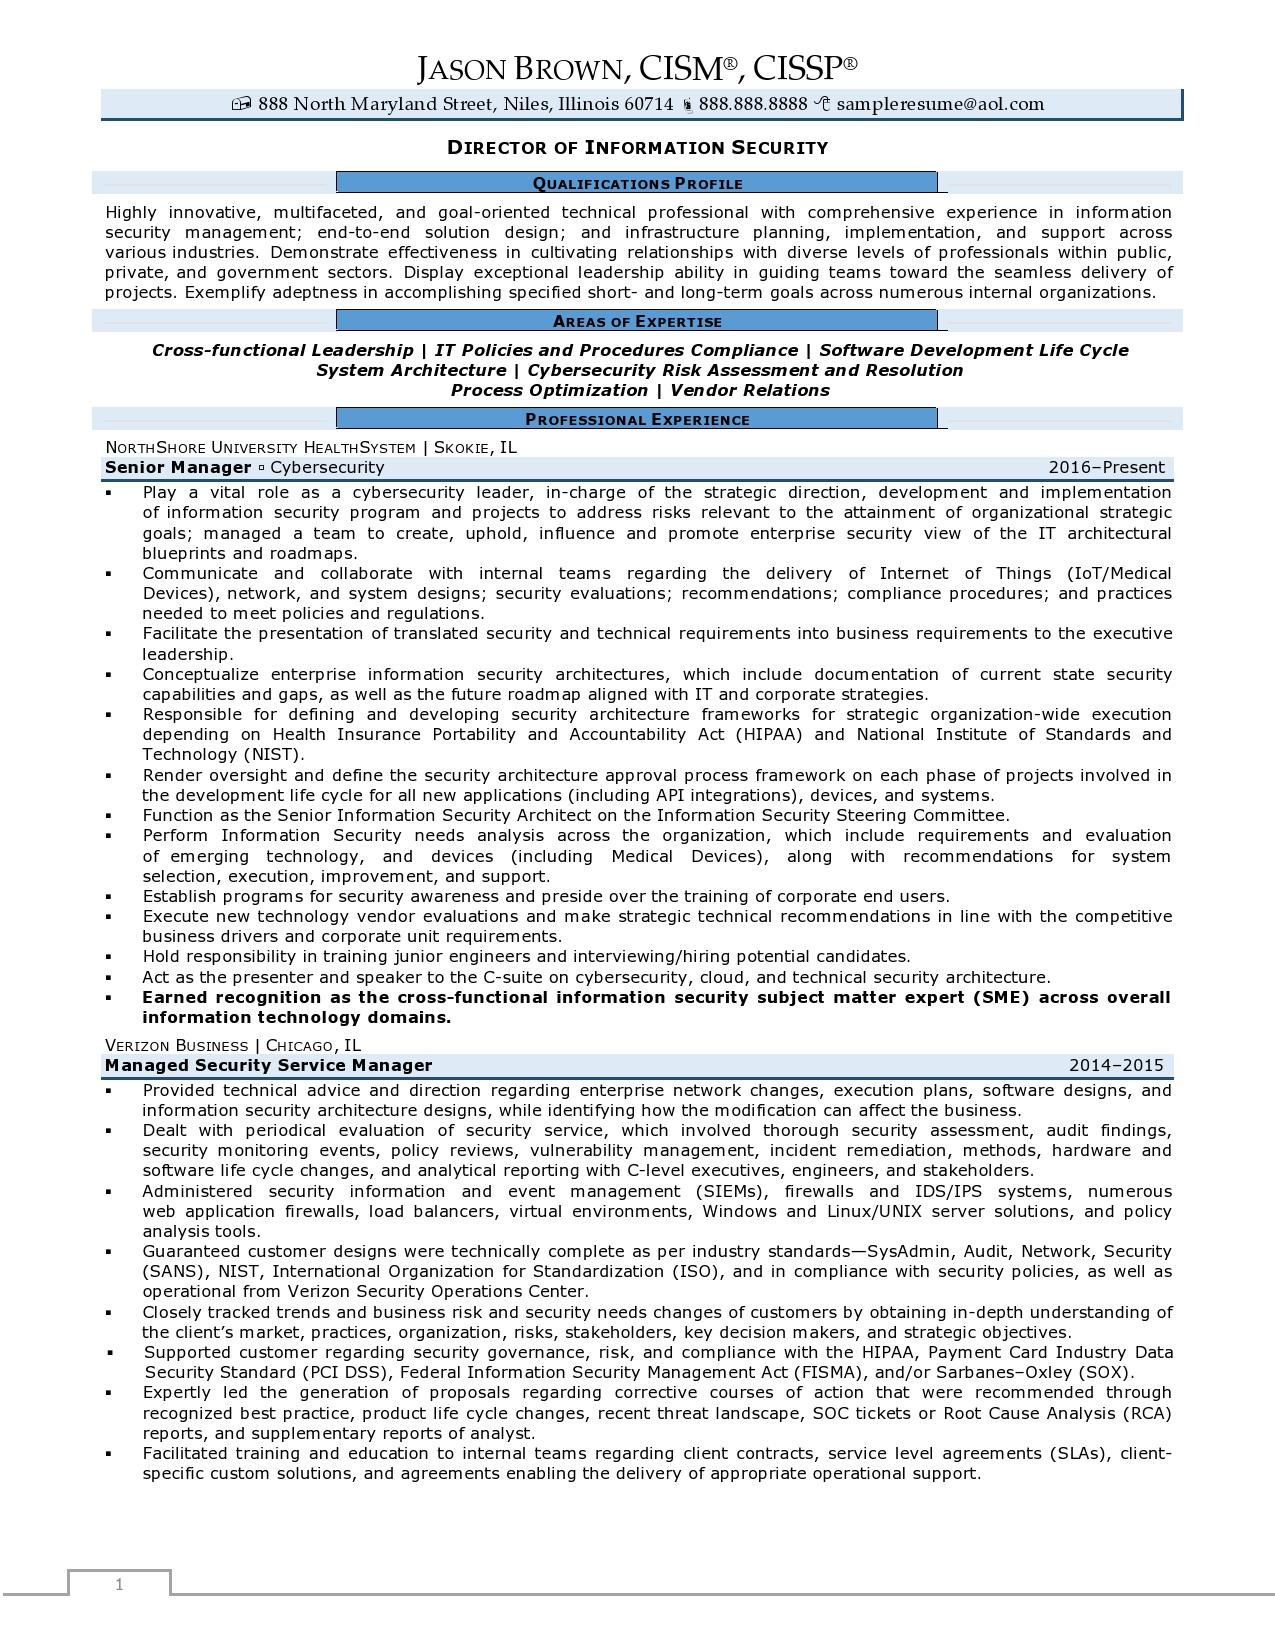 Director of Information Security Resume Examples page 1